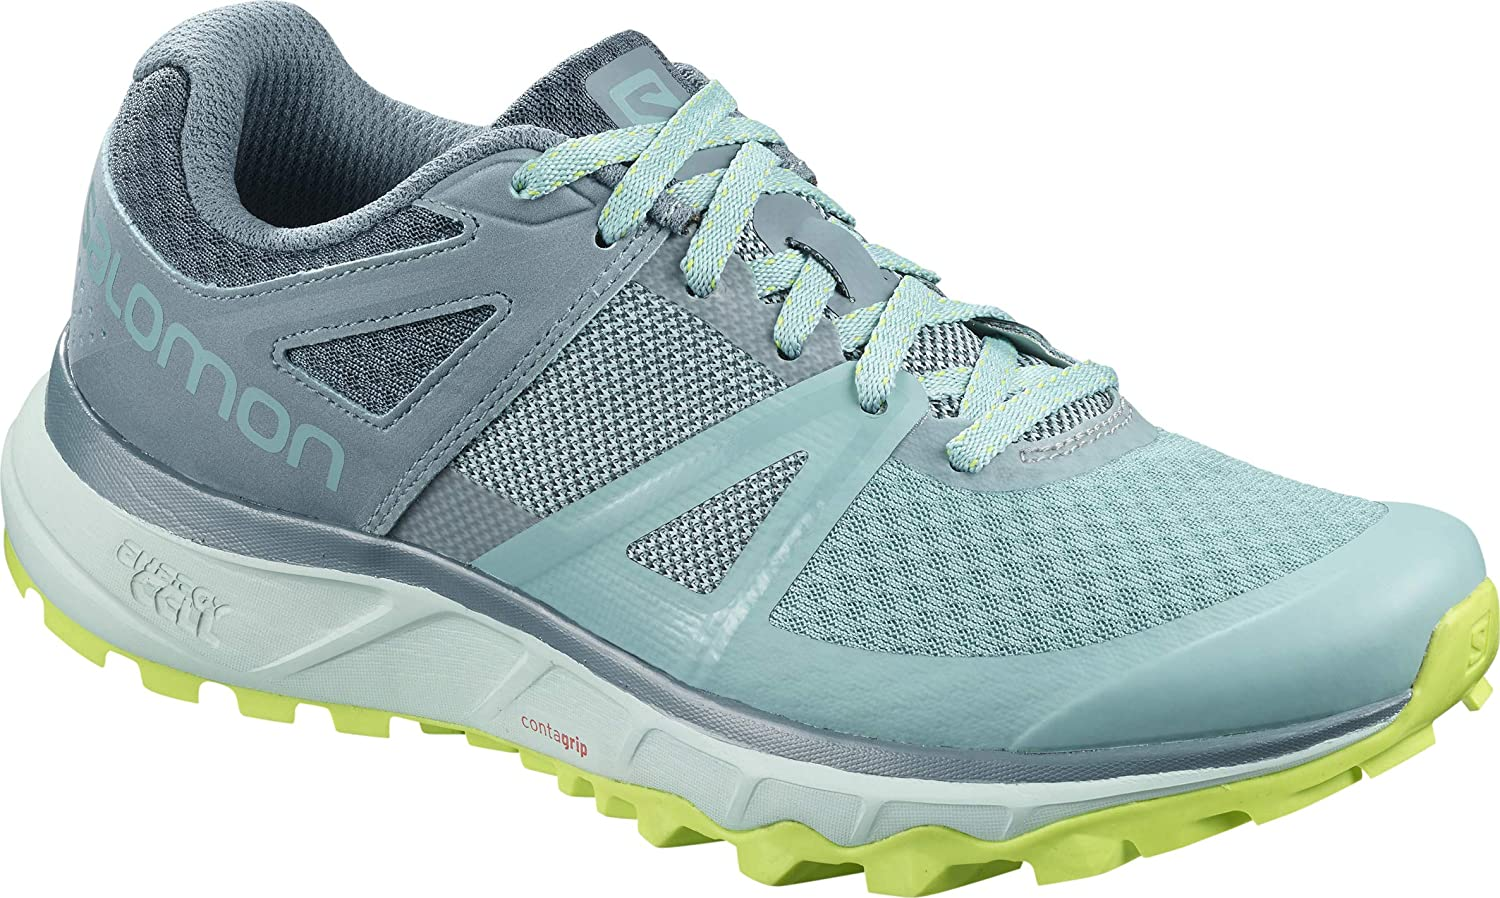 Salomon Women s Trailster Trail Running Shoes, Nile Blue Bluestone Acid Lime, 7 US